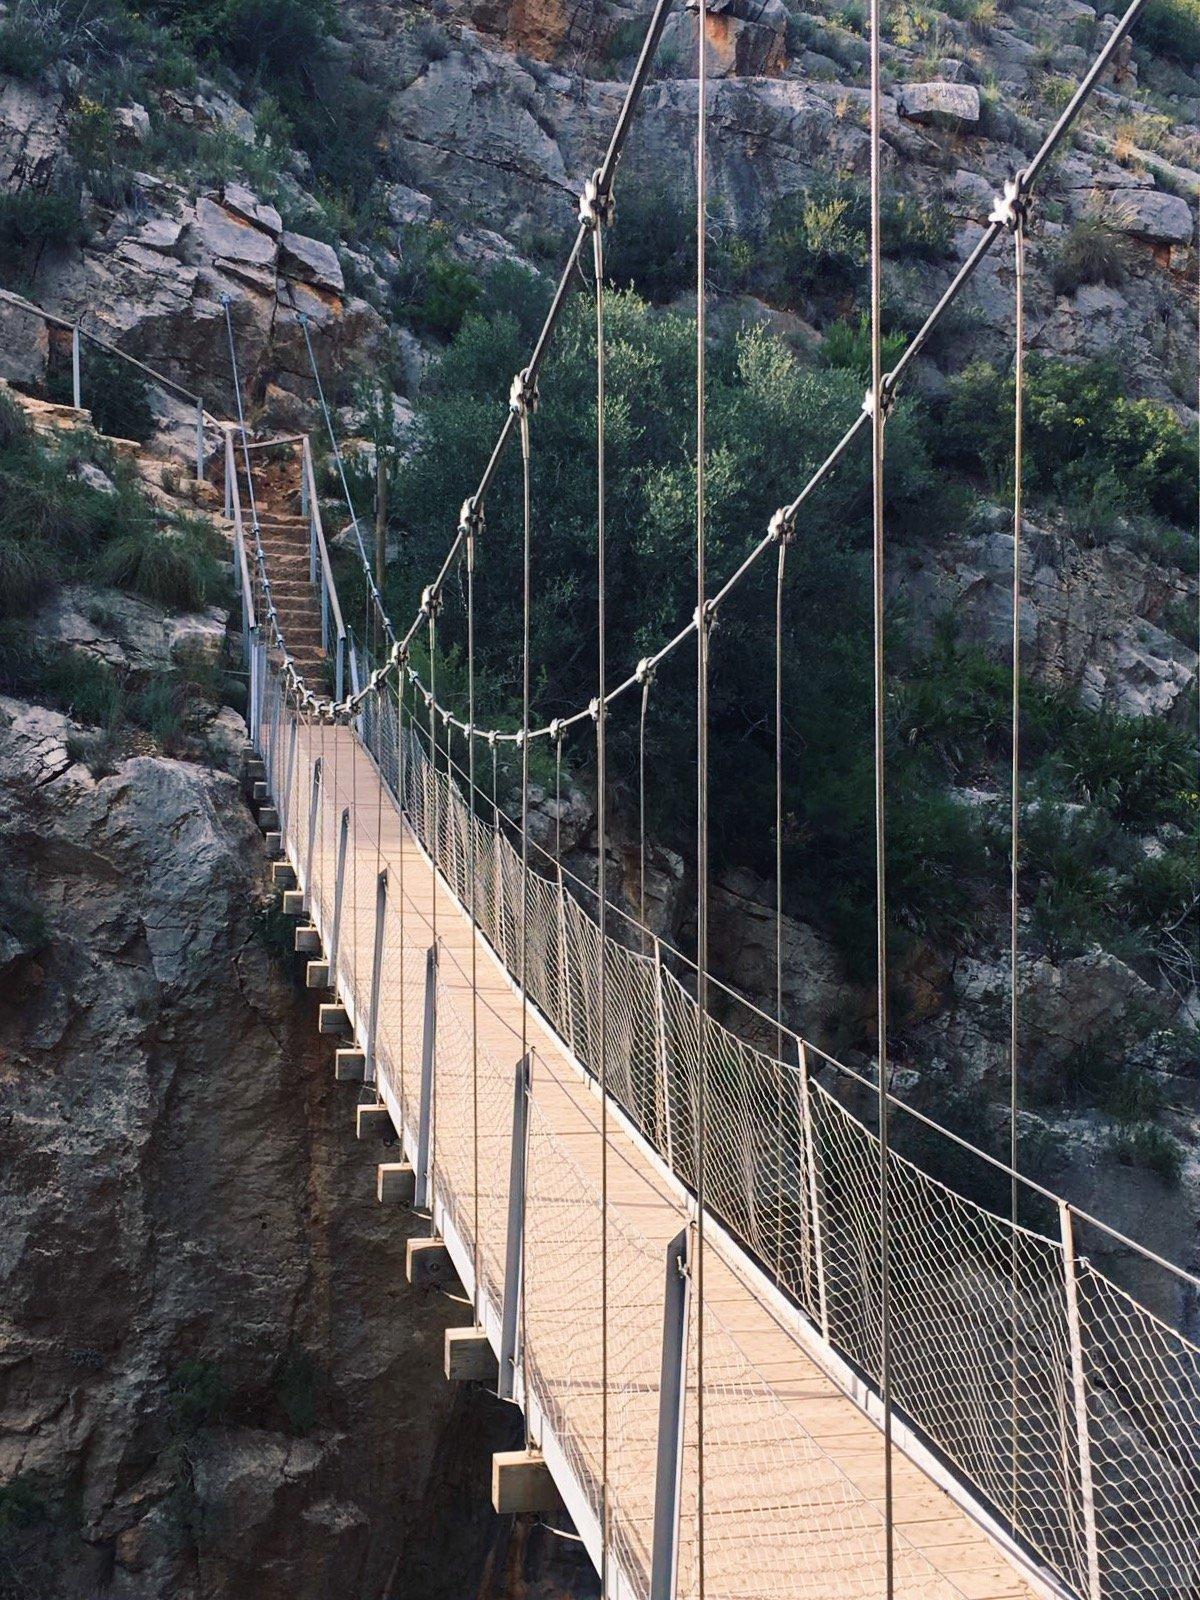 The route of the hanging bridges of Chulilla, a must stop for hikers in the province of Valencia